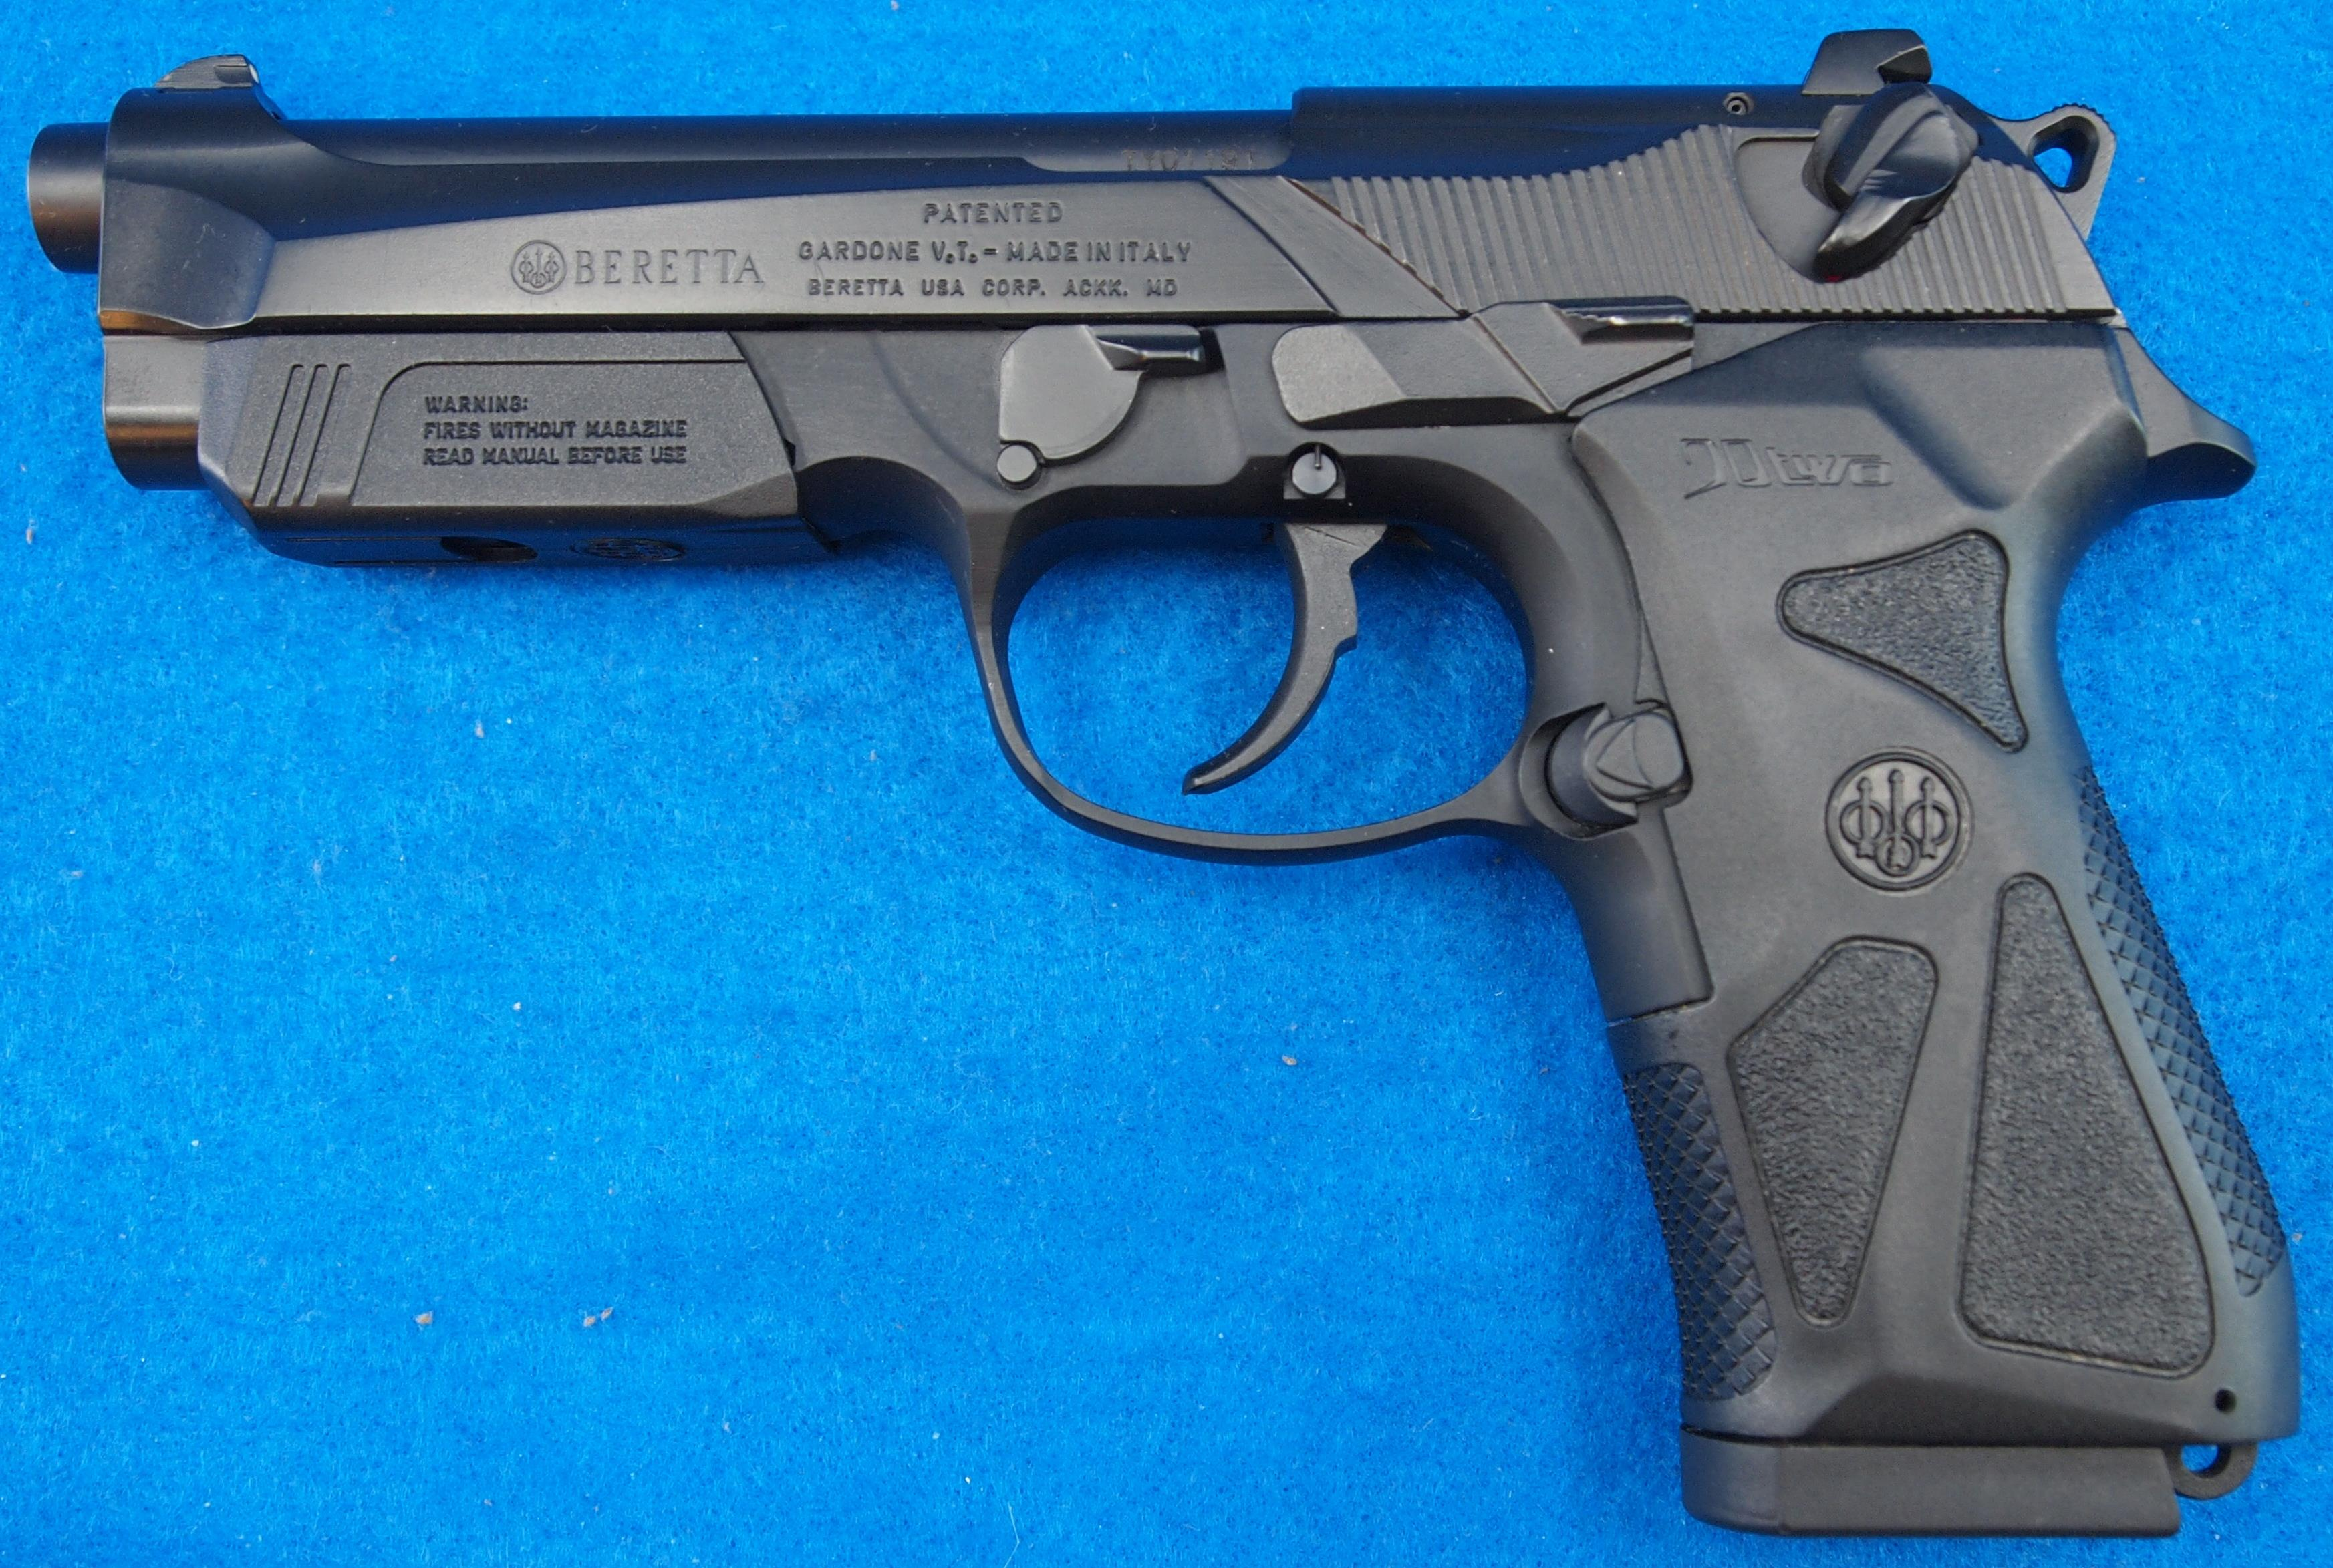 Beretta 90 Two 40 S Amp W Semi Auto For Sale